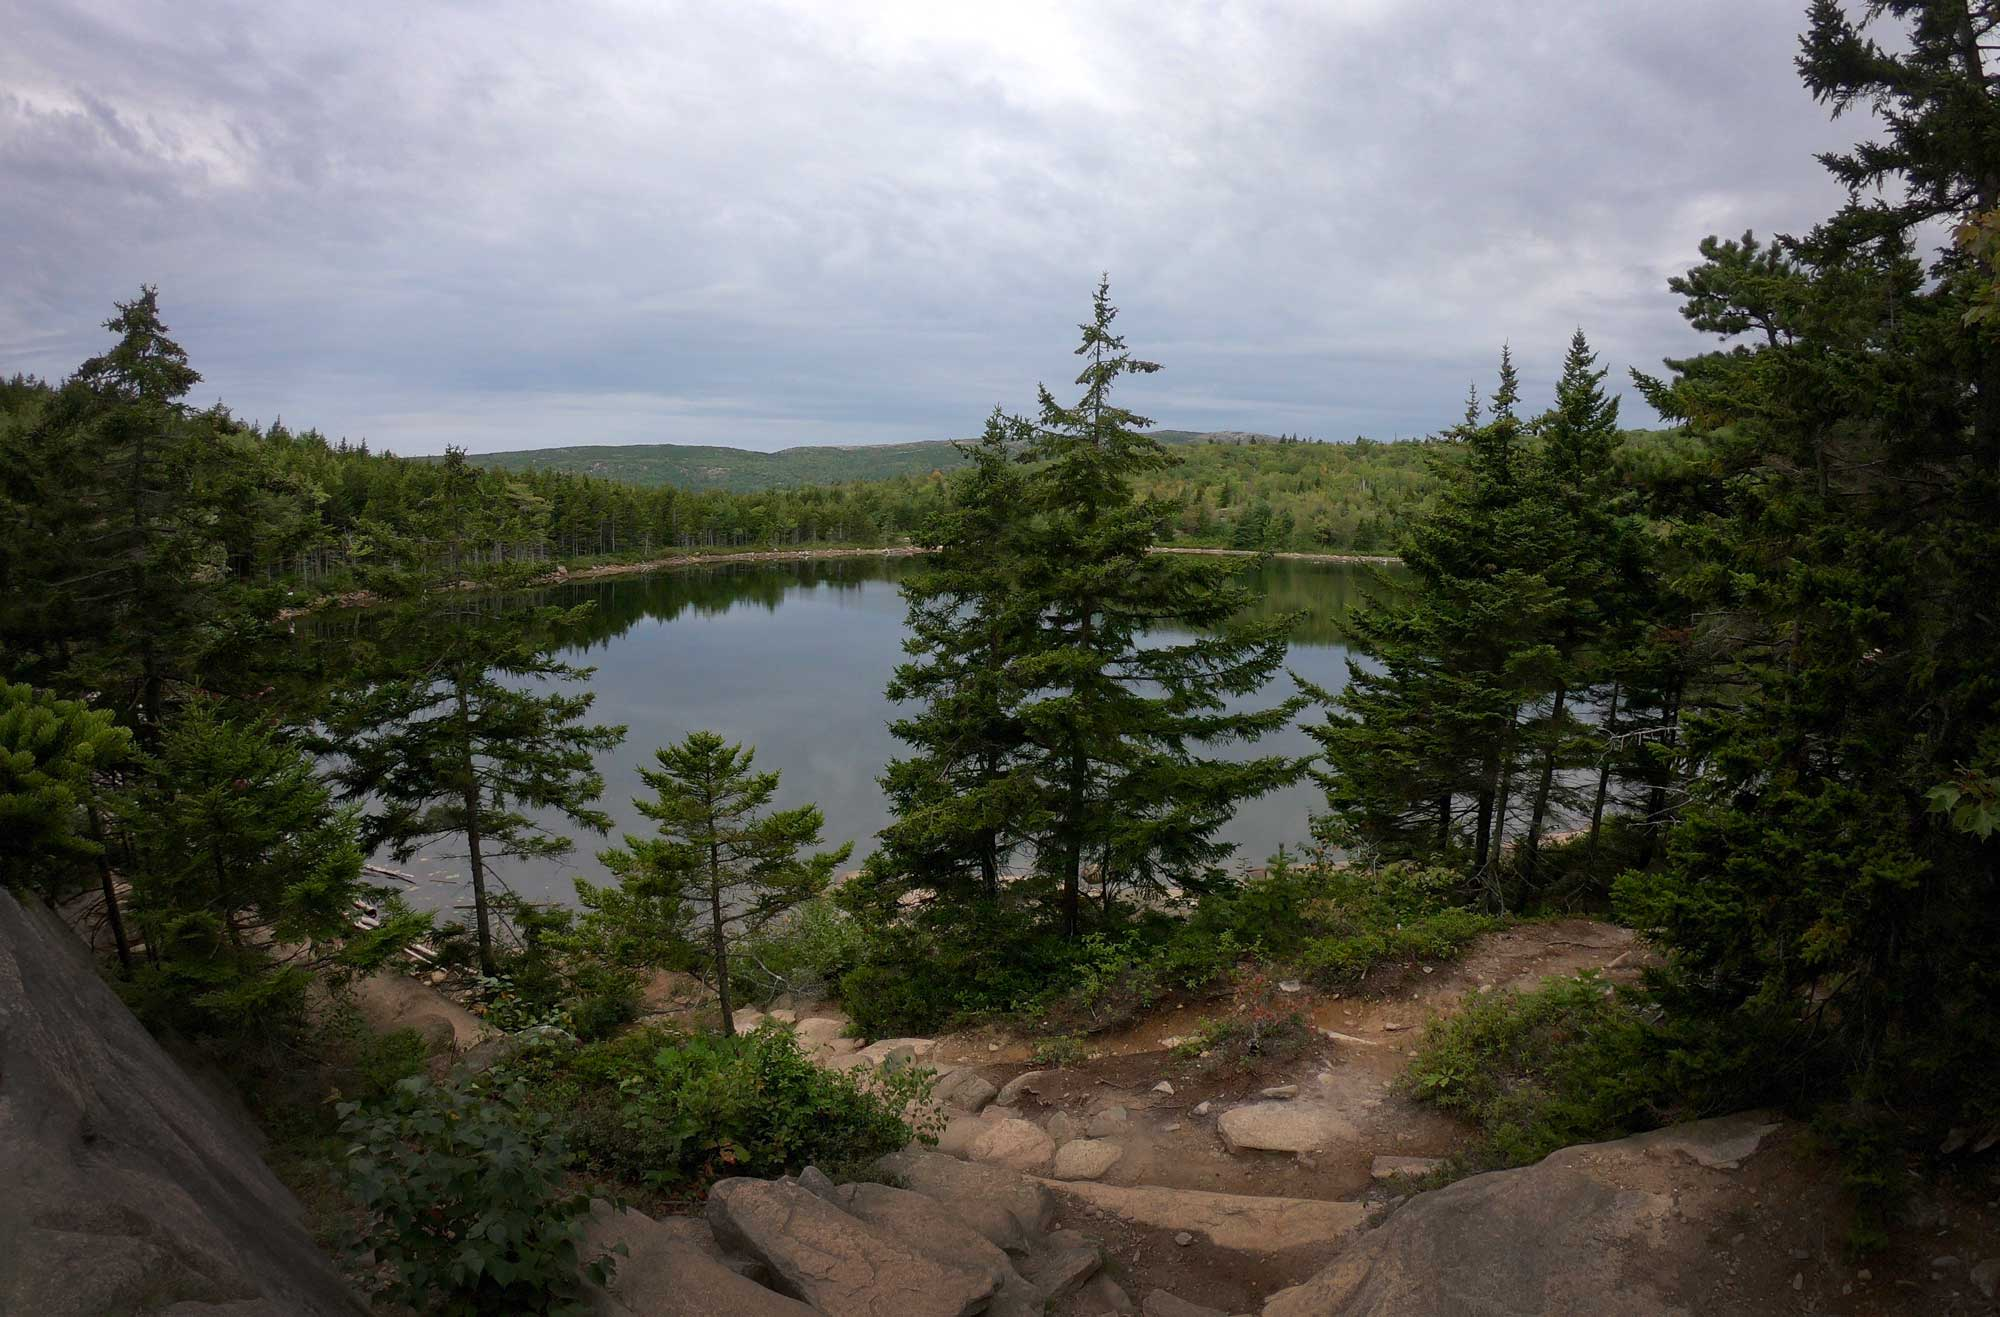 View of the lake off the Bowl Trail in Acadia National Park, Maine